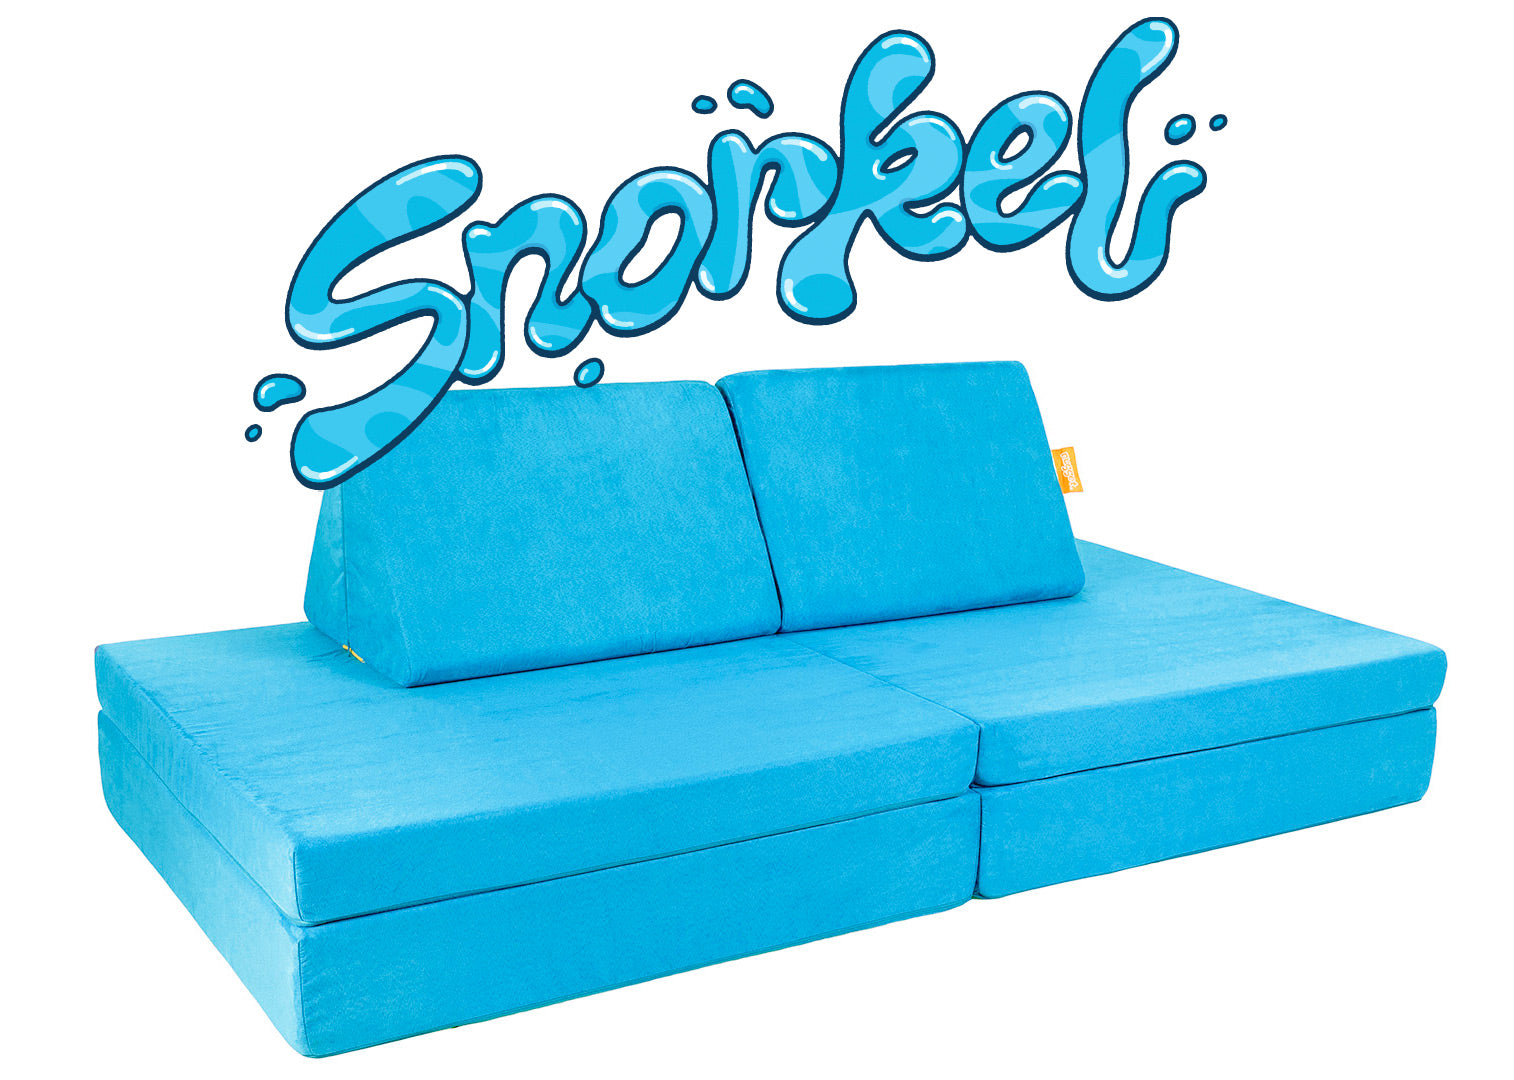 Snorkel Nugget couch on white backdrop